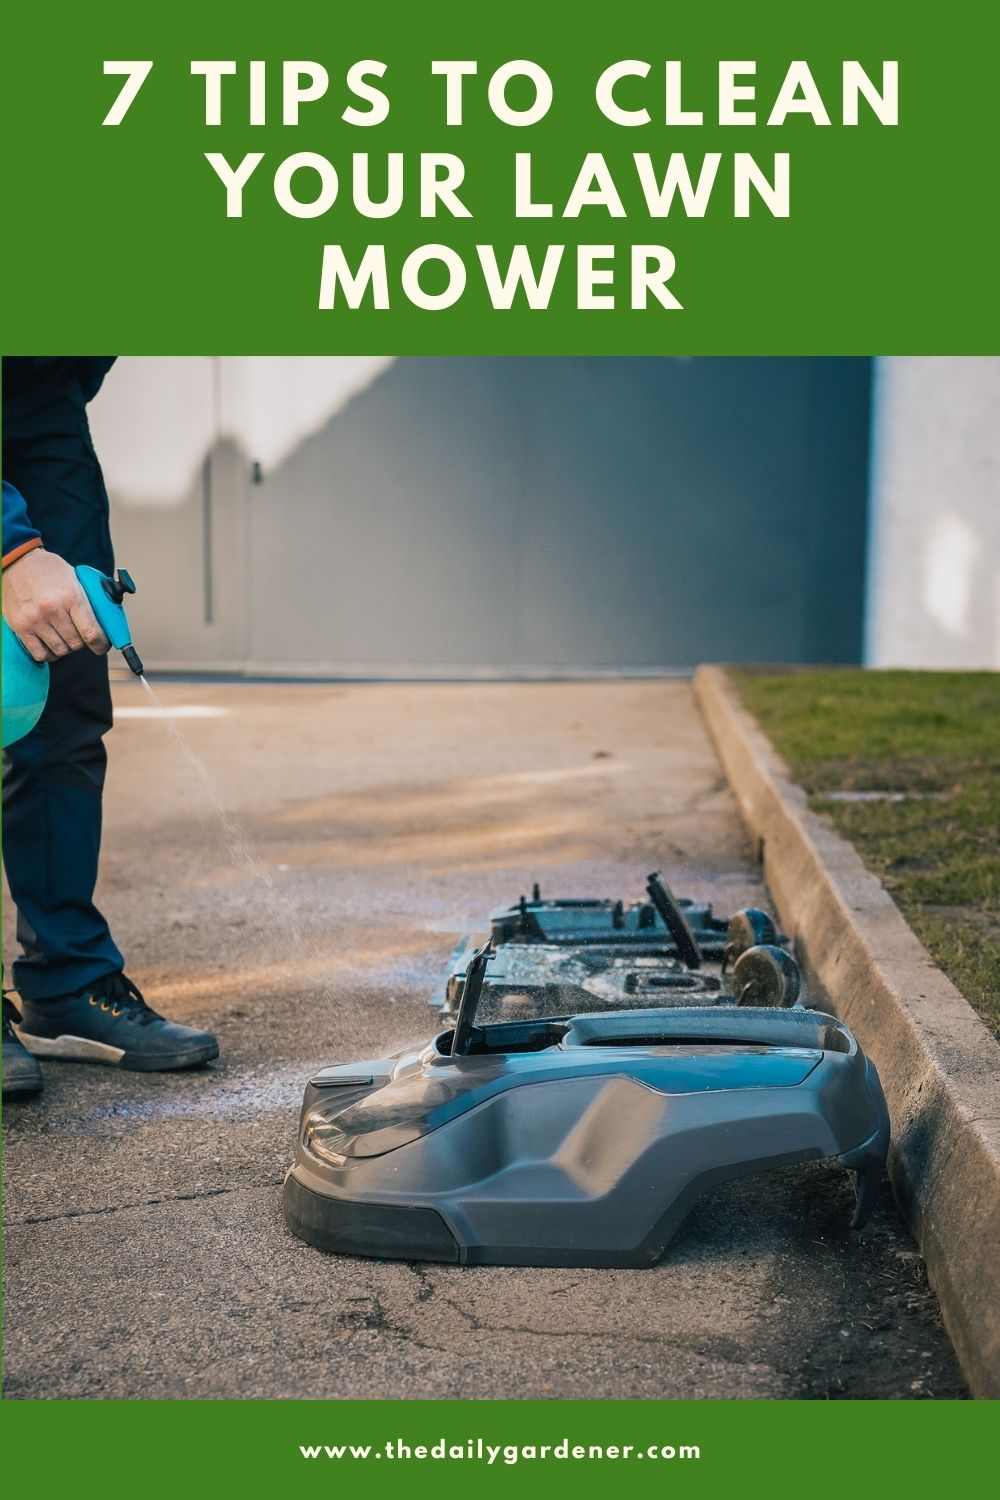 7 Tips to Clean Your Lawn Mower 1